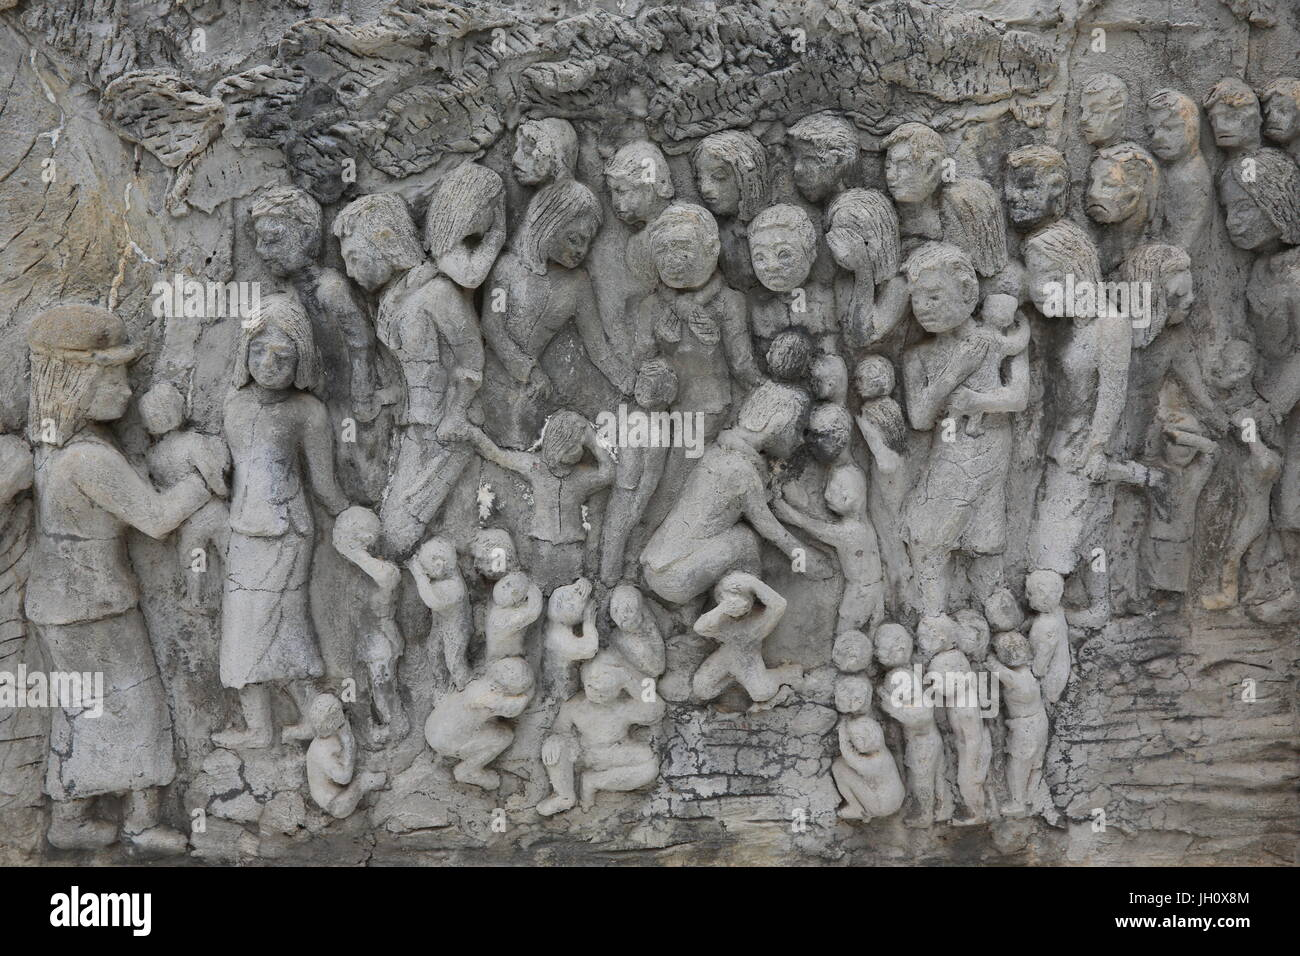 Memorial shrine festooned with bas-reliefs of Khmer Rouge atrocities at Wat Somrong Knong. Cambodia. - Stock Image